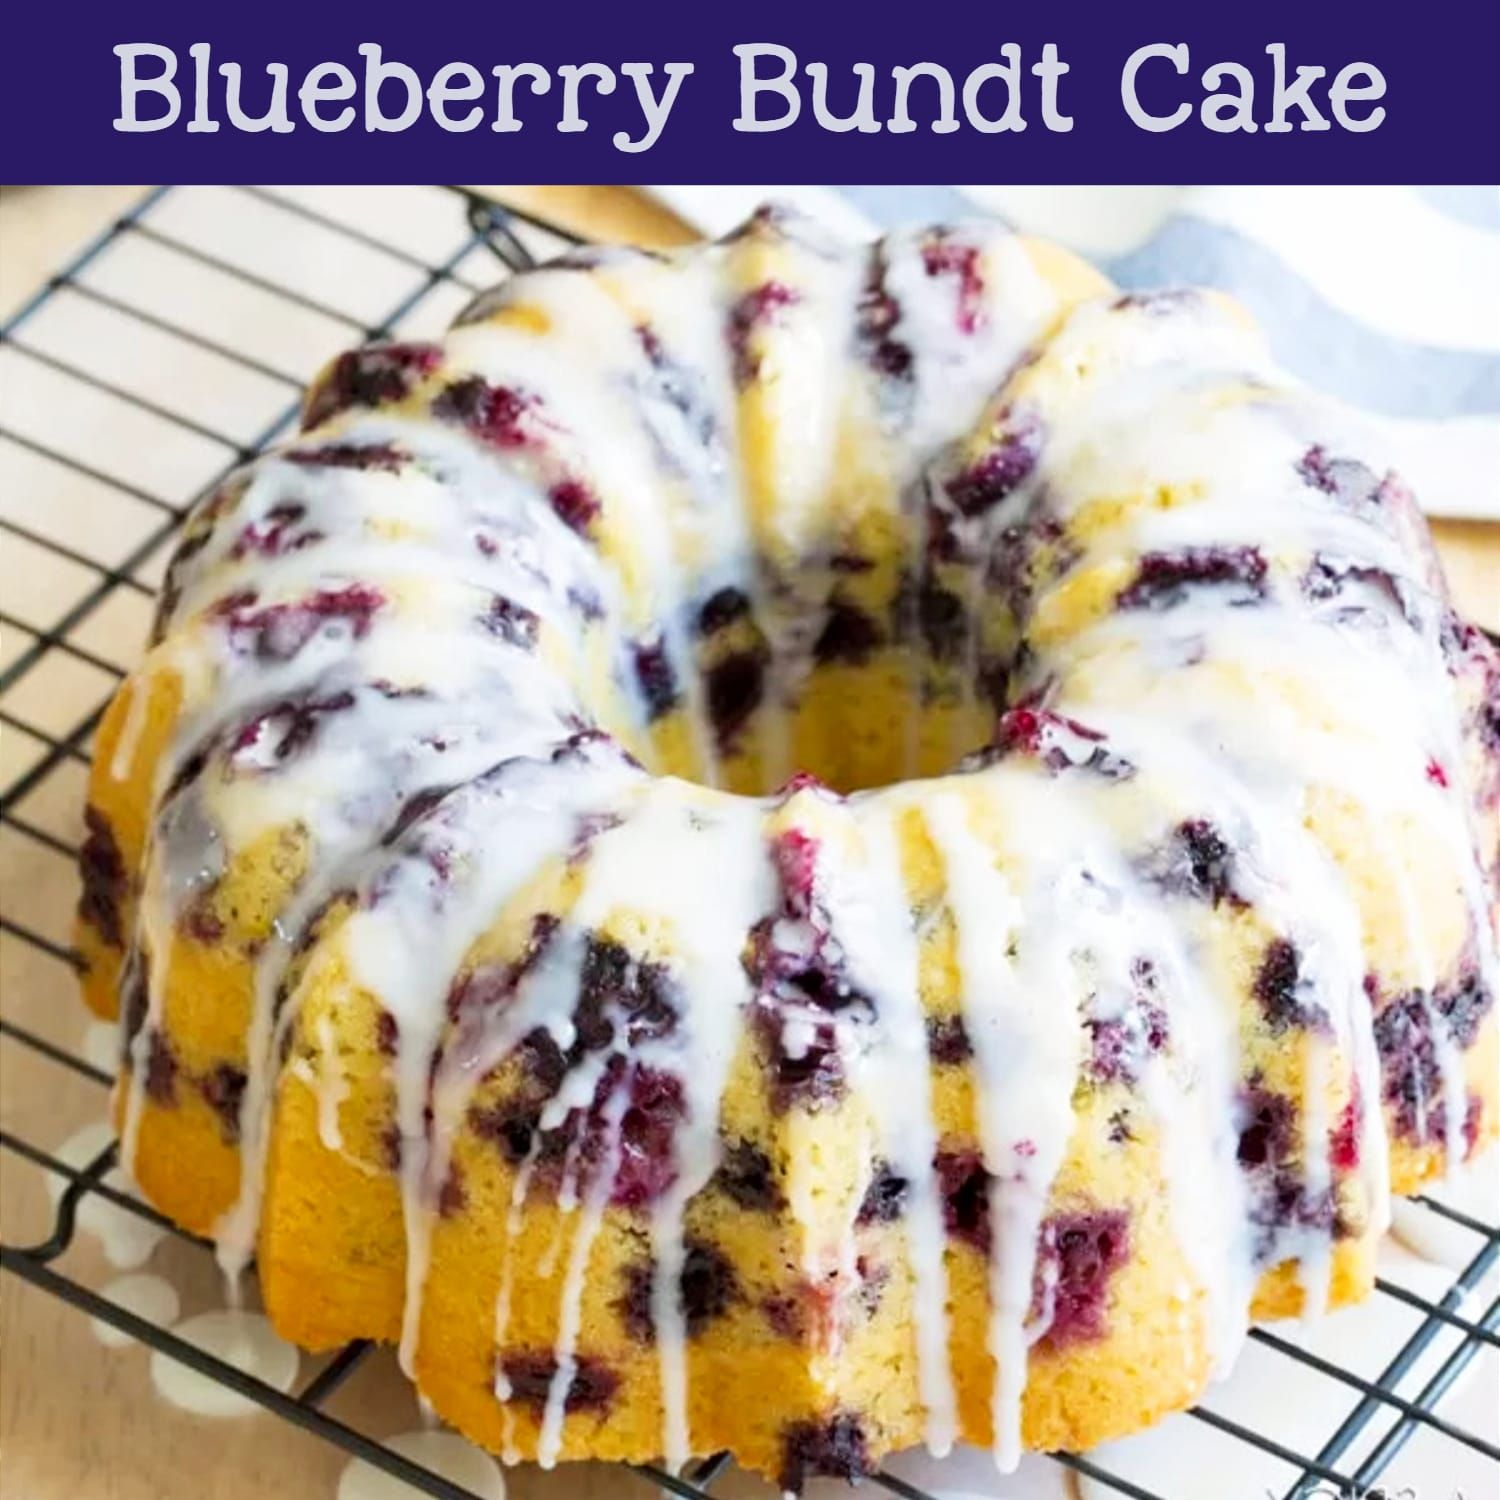 Make ahead breakfast ideas for a crowd, brunch food ideas and thoughtful funeral food ideas for a crowd - these breakfast cake and bundt cake recipes are perfect brunch food ideas and easy breakfast ideas for guests - yummy blueberry recipes